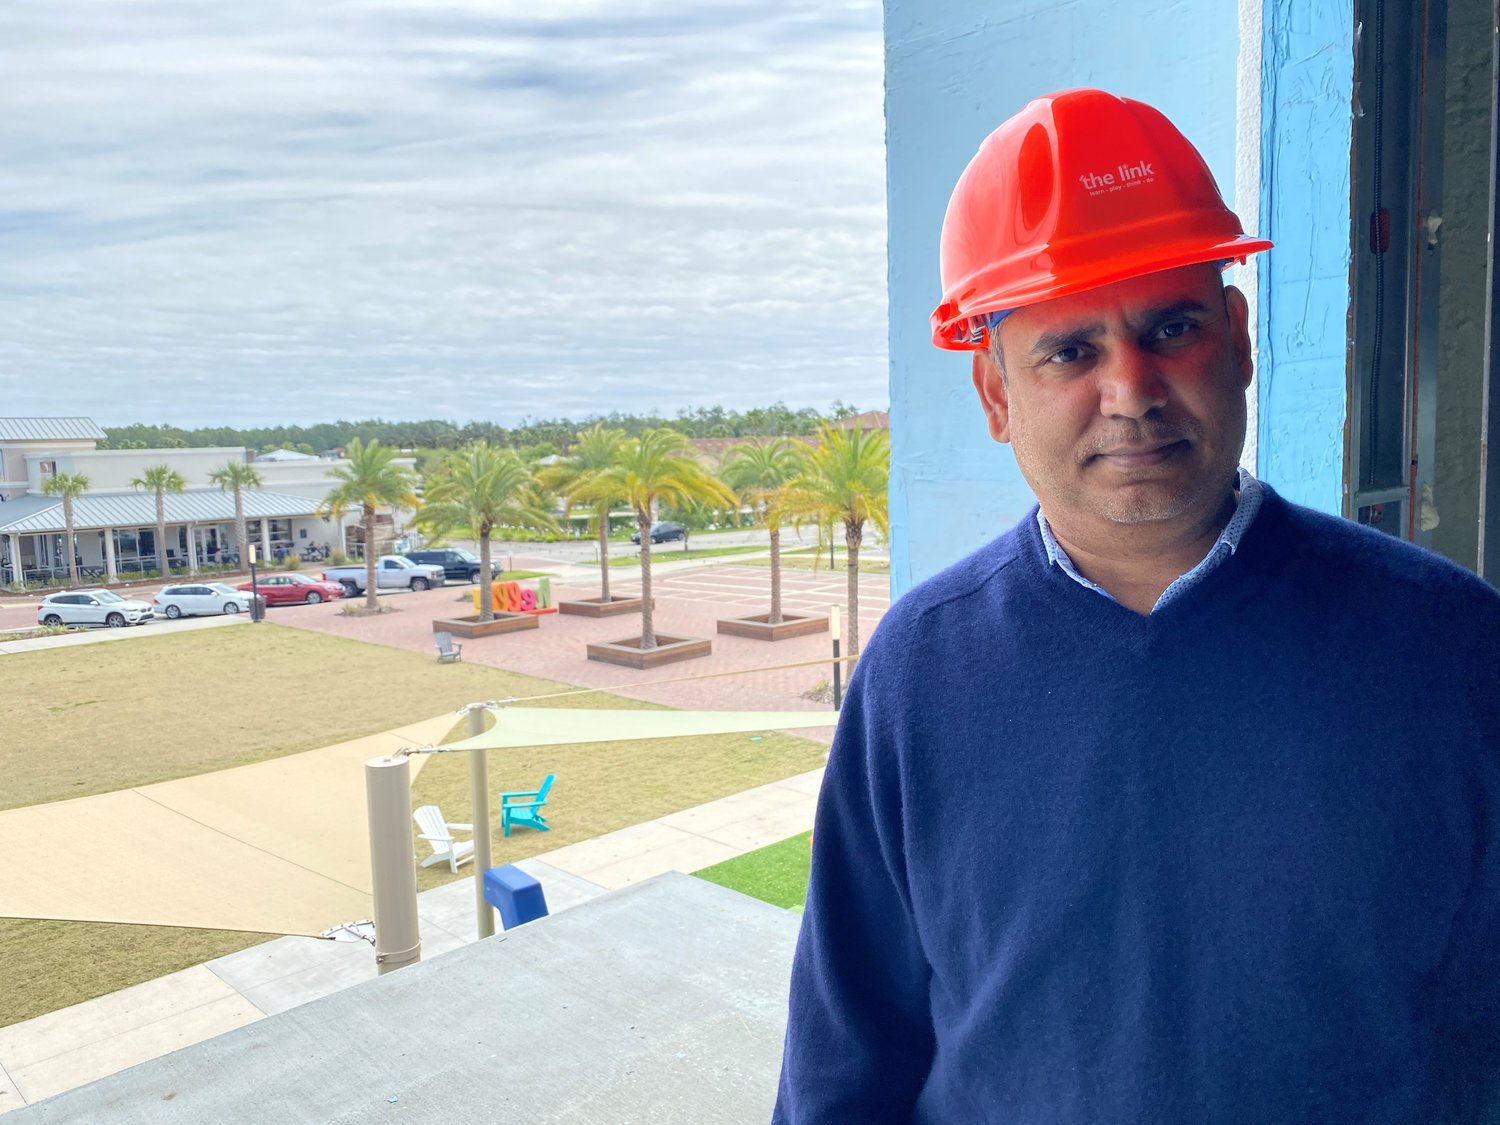 Raghu Misra, the man behind Wired2Perform and the link, stands on the second floor of the latter's building, which is under construction. When the facility is completed, large windows here will look out on a balcony.